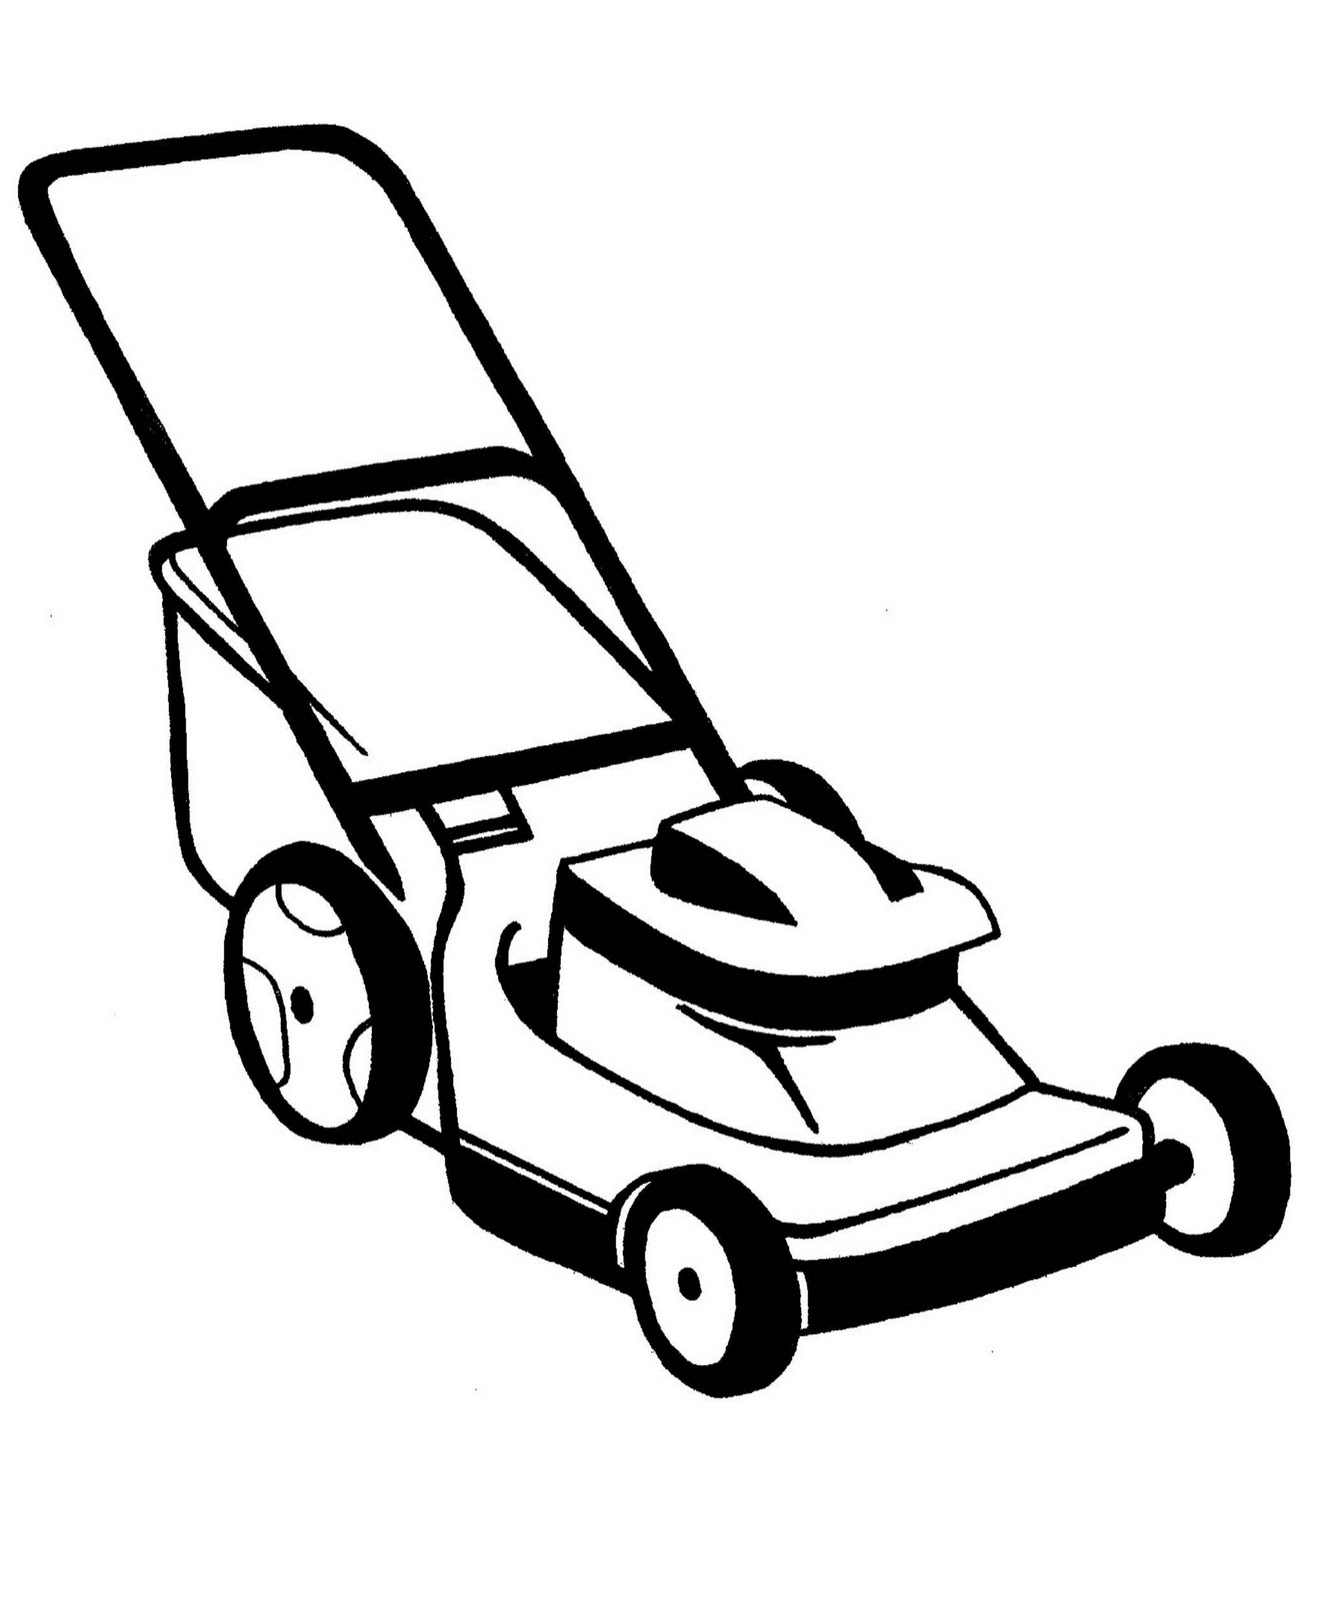 scotts s parts diagram � lawn mower drawing at getdrawings